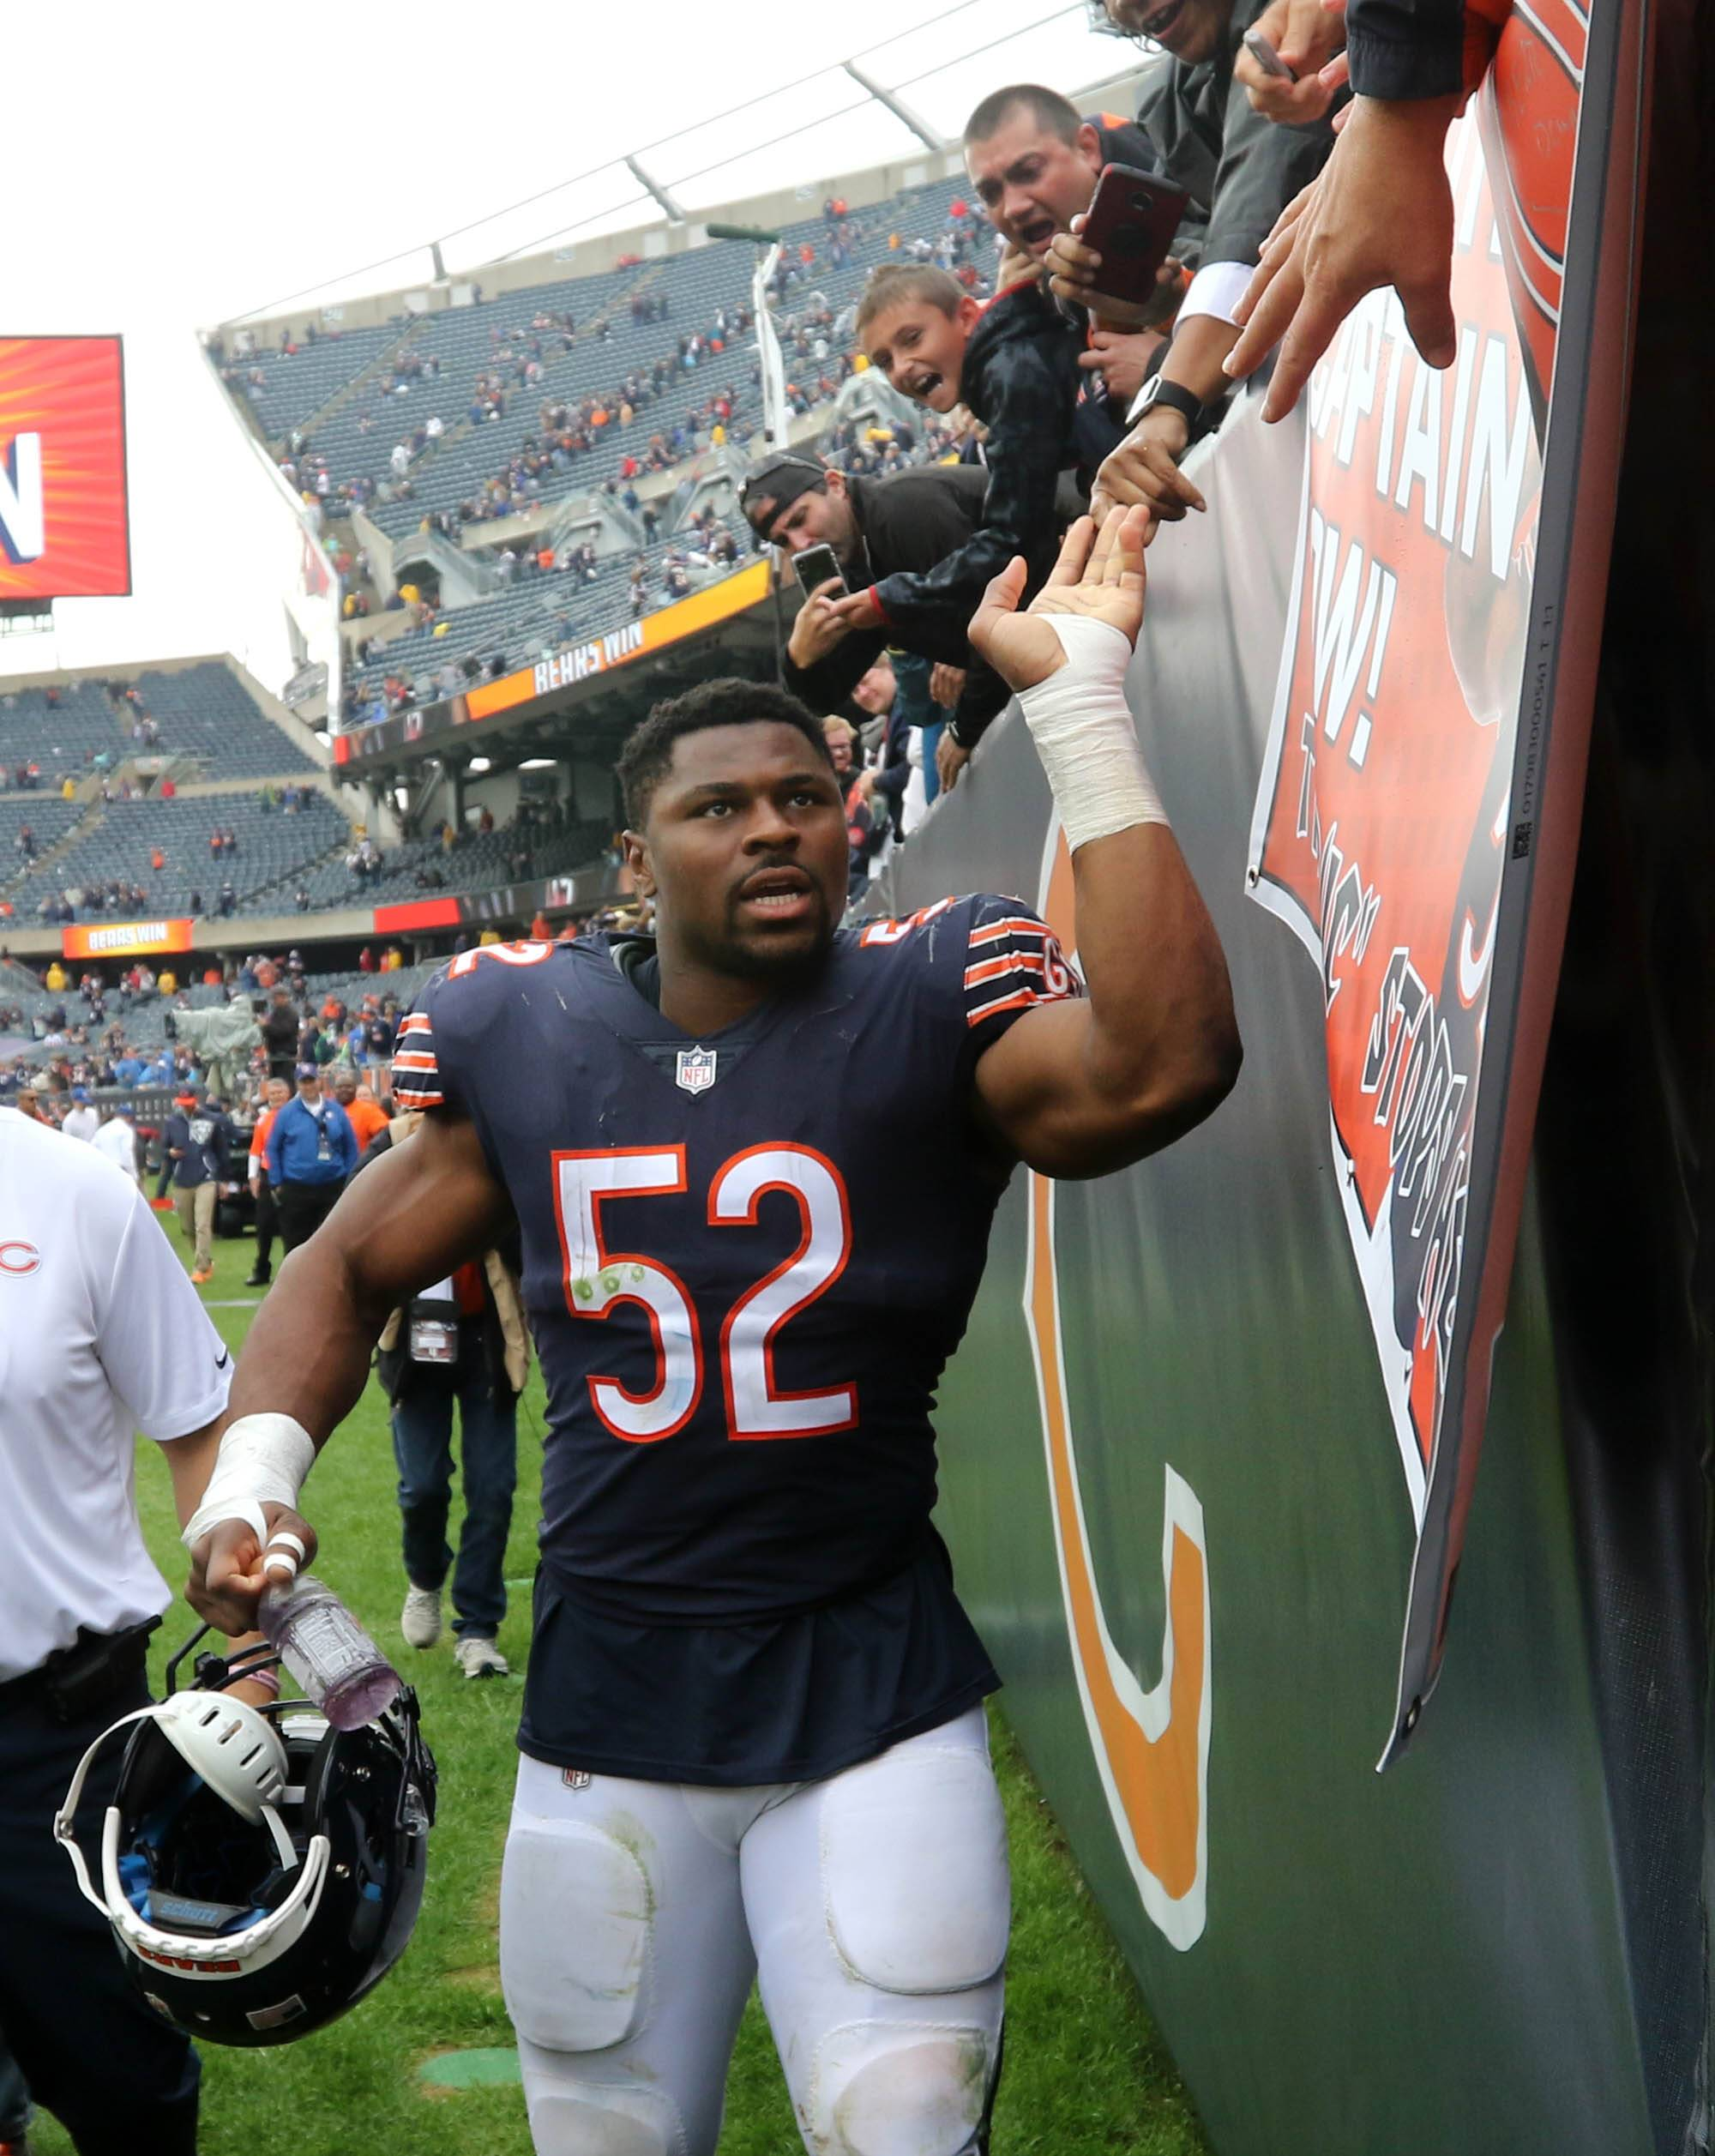 Chicago Bears linebacker Khalil Mack celebrates with fans after a win last year at Soldier Field. Mack is scheduled to play ball at Boomers Stadium in Schaumburg on June 15 for teammate Eddie Jackson's inaugural Offense vs Defense Charity Softball Game.